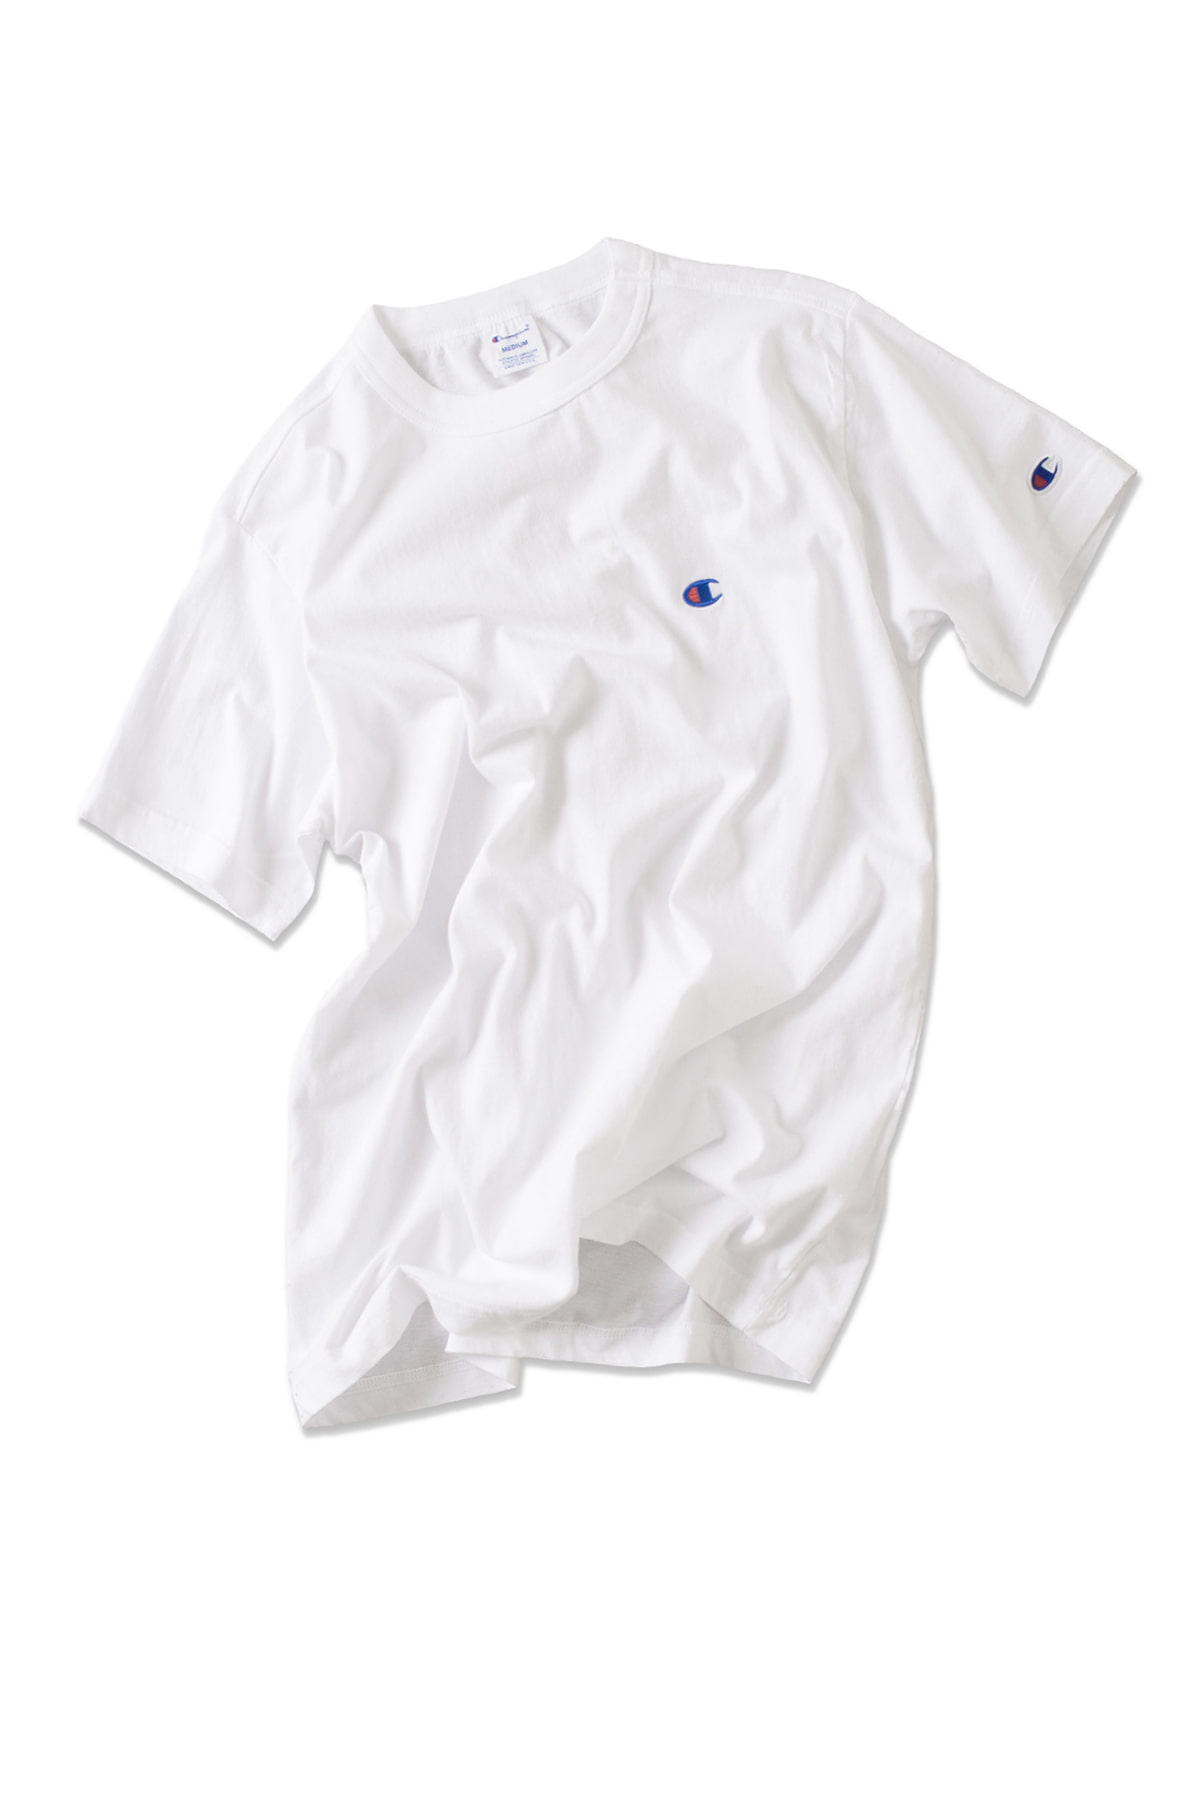 Champion : Basic T-Shirt (White)